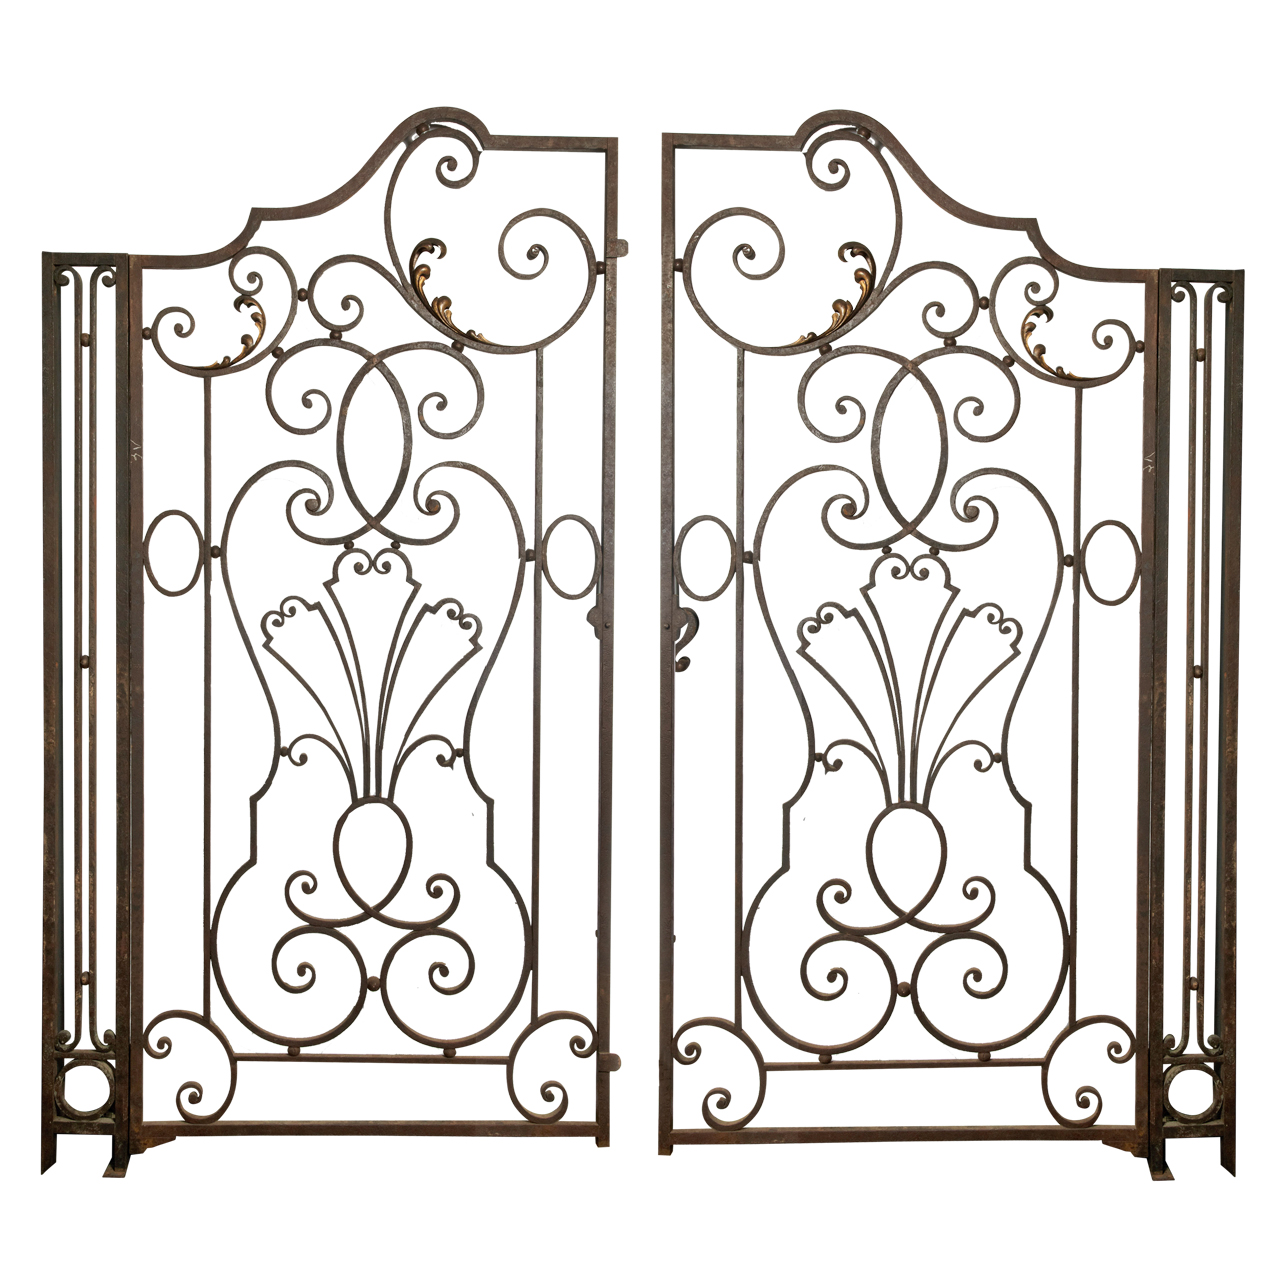 Classic Wrought Iron Gates Calabasas Woodland Hills Agoura North